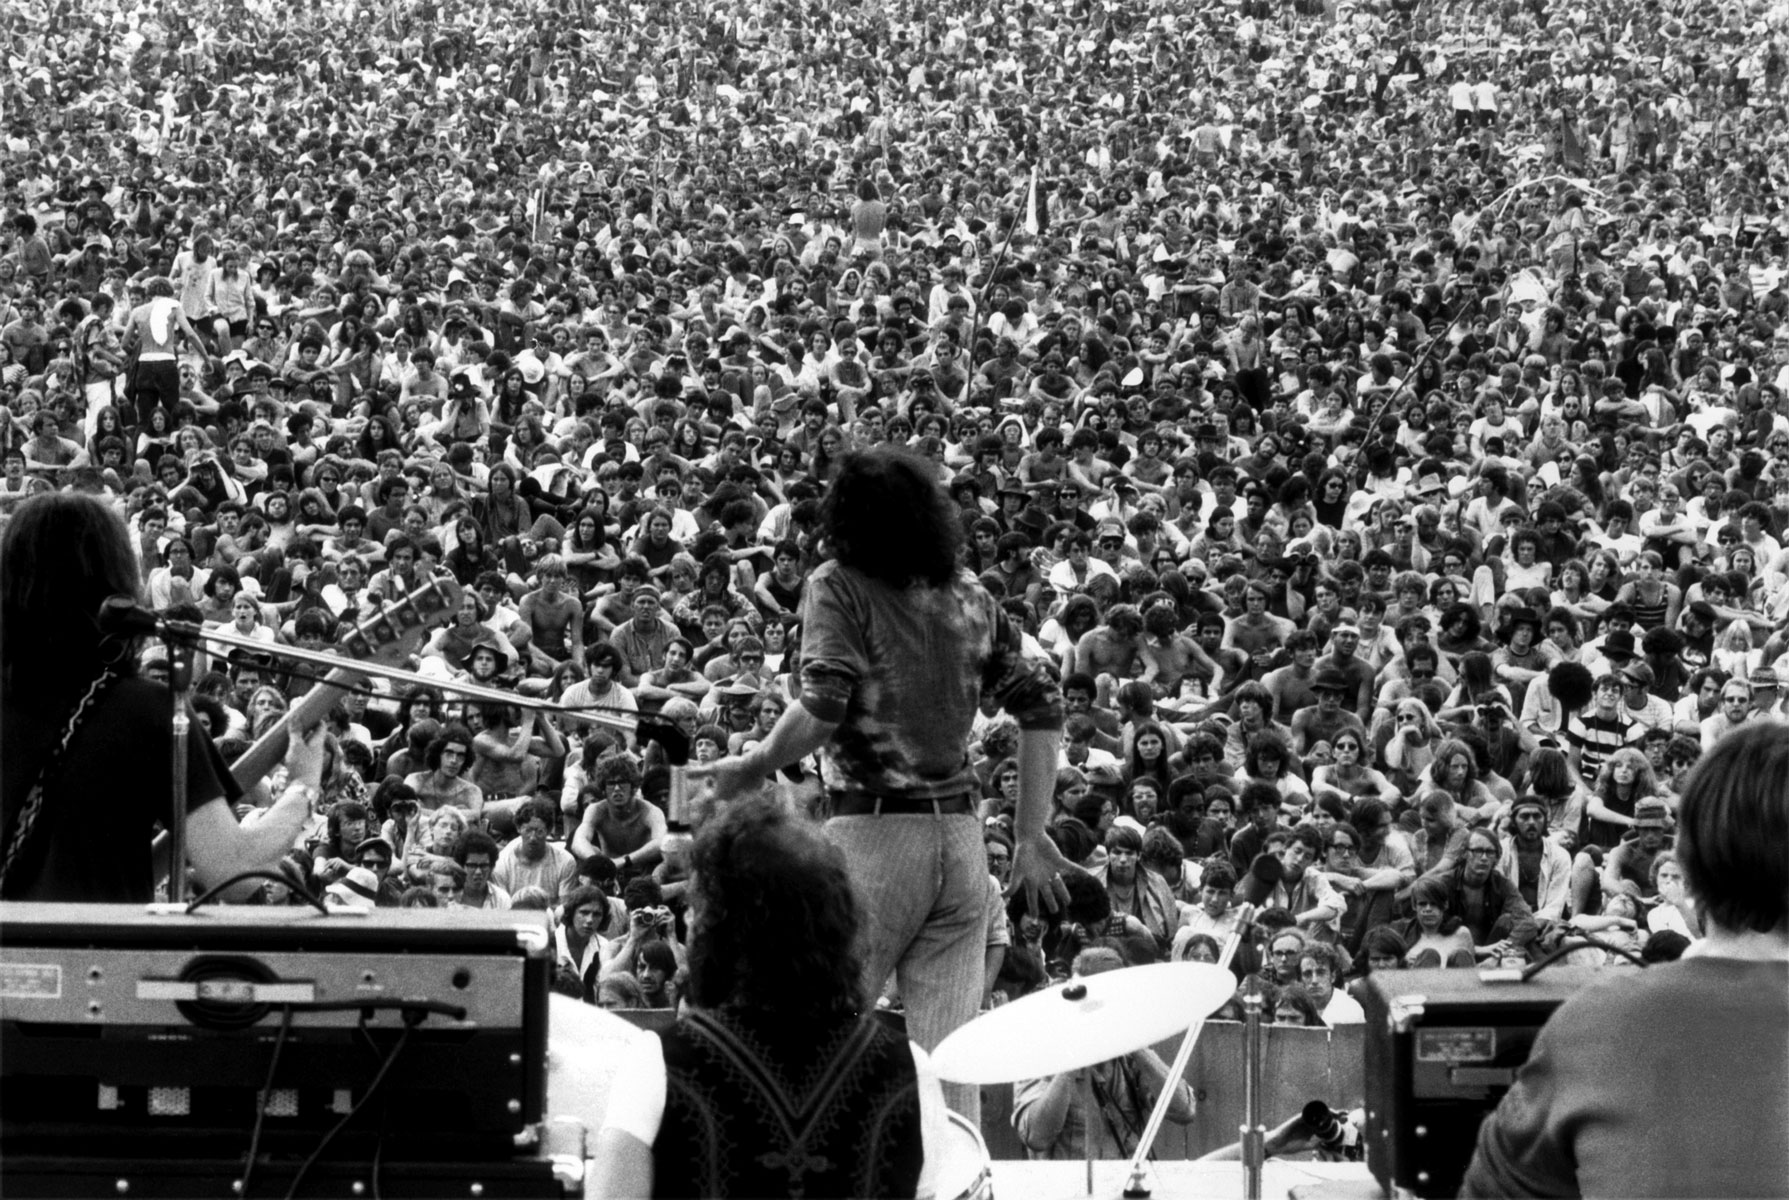 Event Date: 8/25/1969 Cocker took the stage on the third and final day of the music concert in upstate New York and played five songs. Фото: Don Hogan Charles/The New York Times Photo Archives/East News